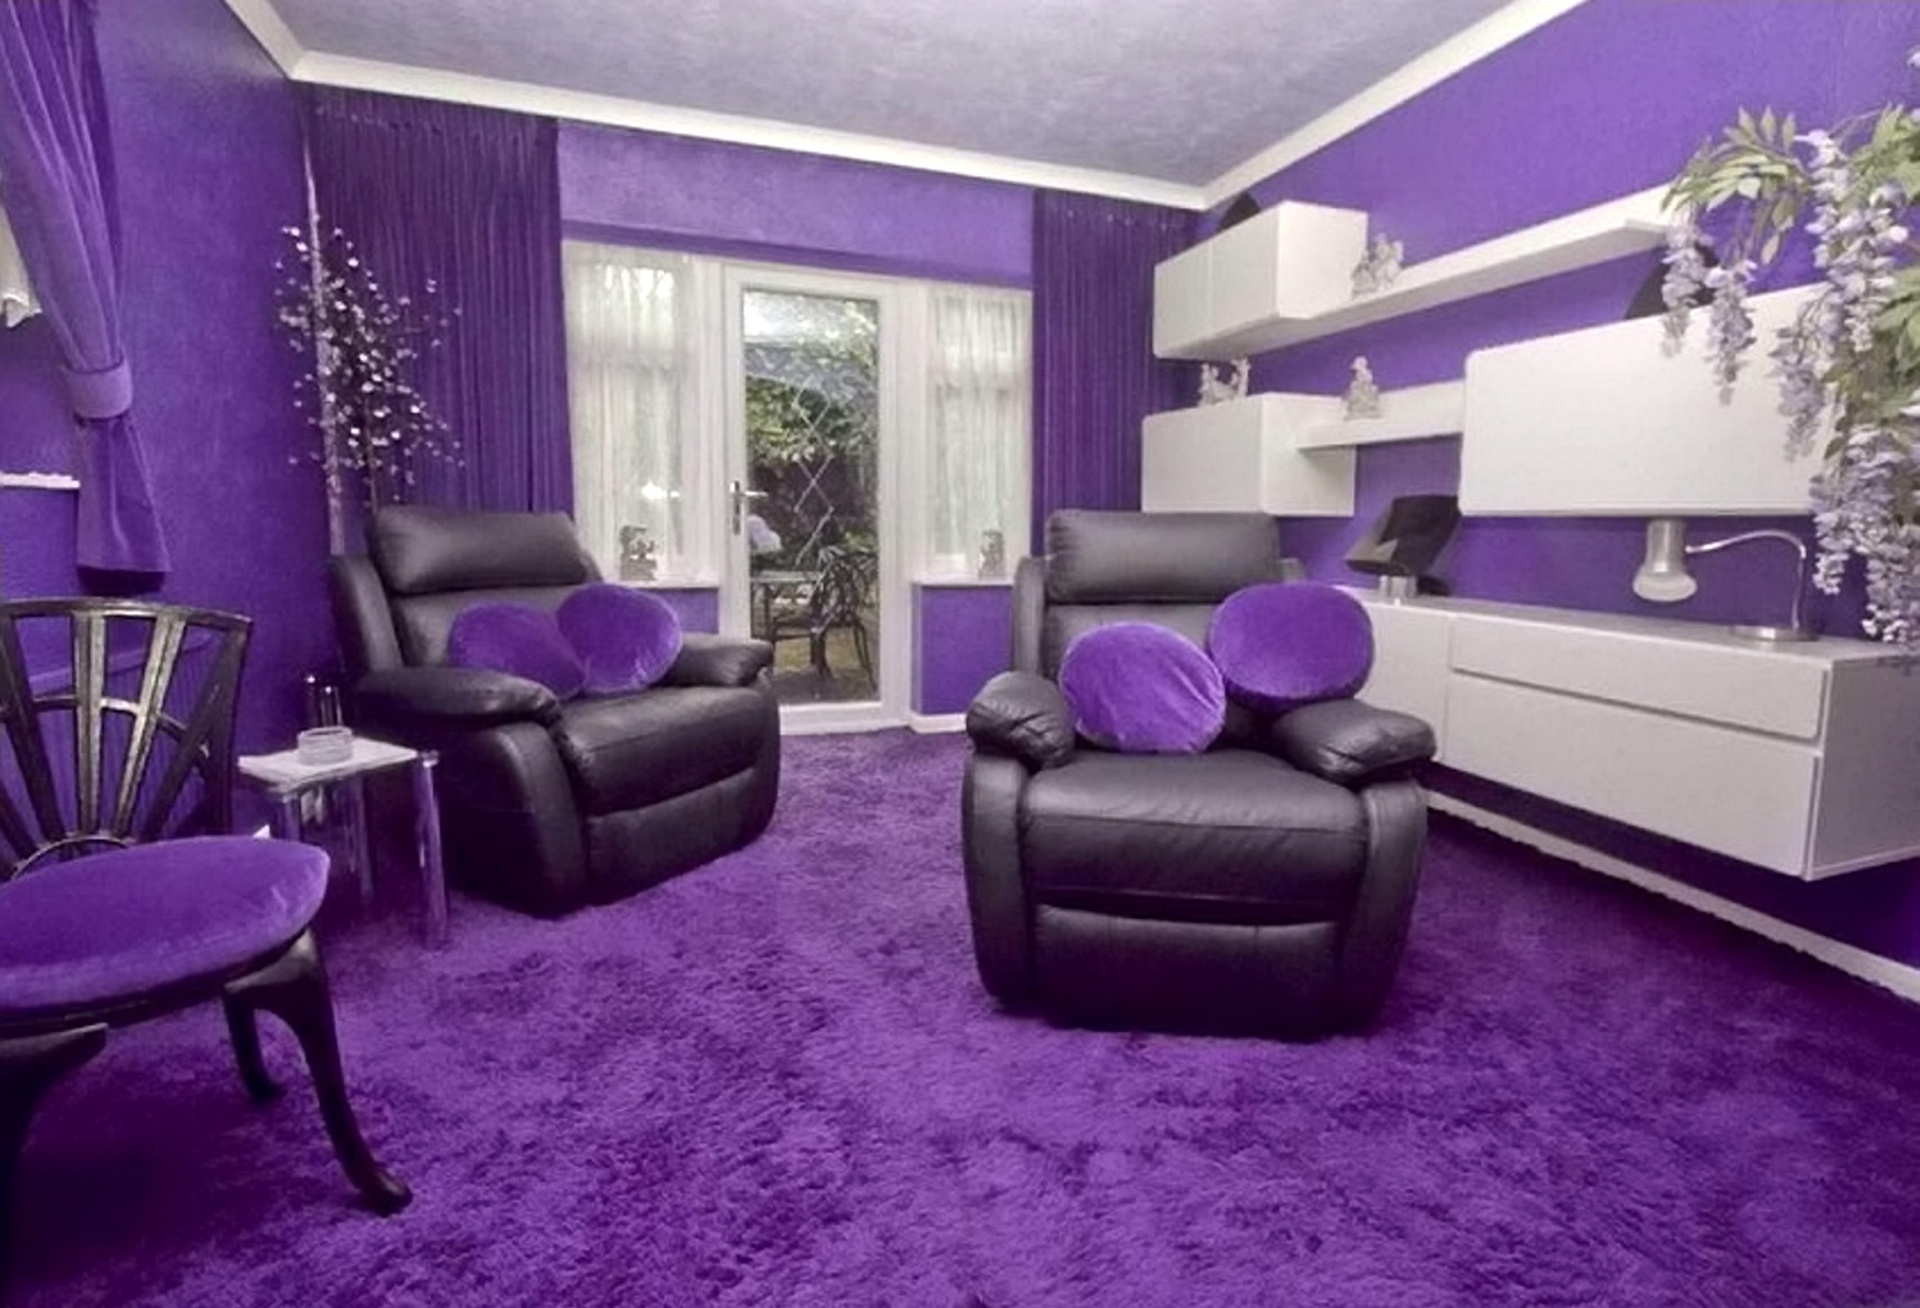 weirdest homes from around the world house shop blog purple in hillingdon middlesex beautiful modern homes small modern homes toilet designs home designer online cool room for teenage guys